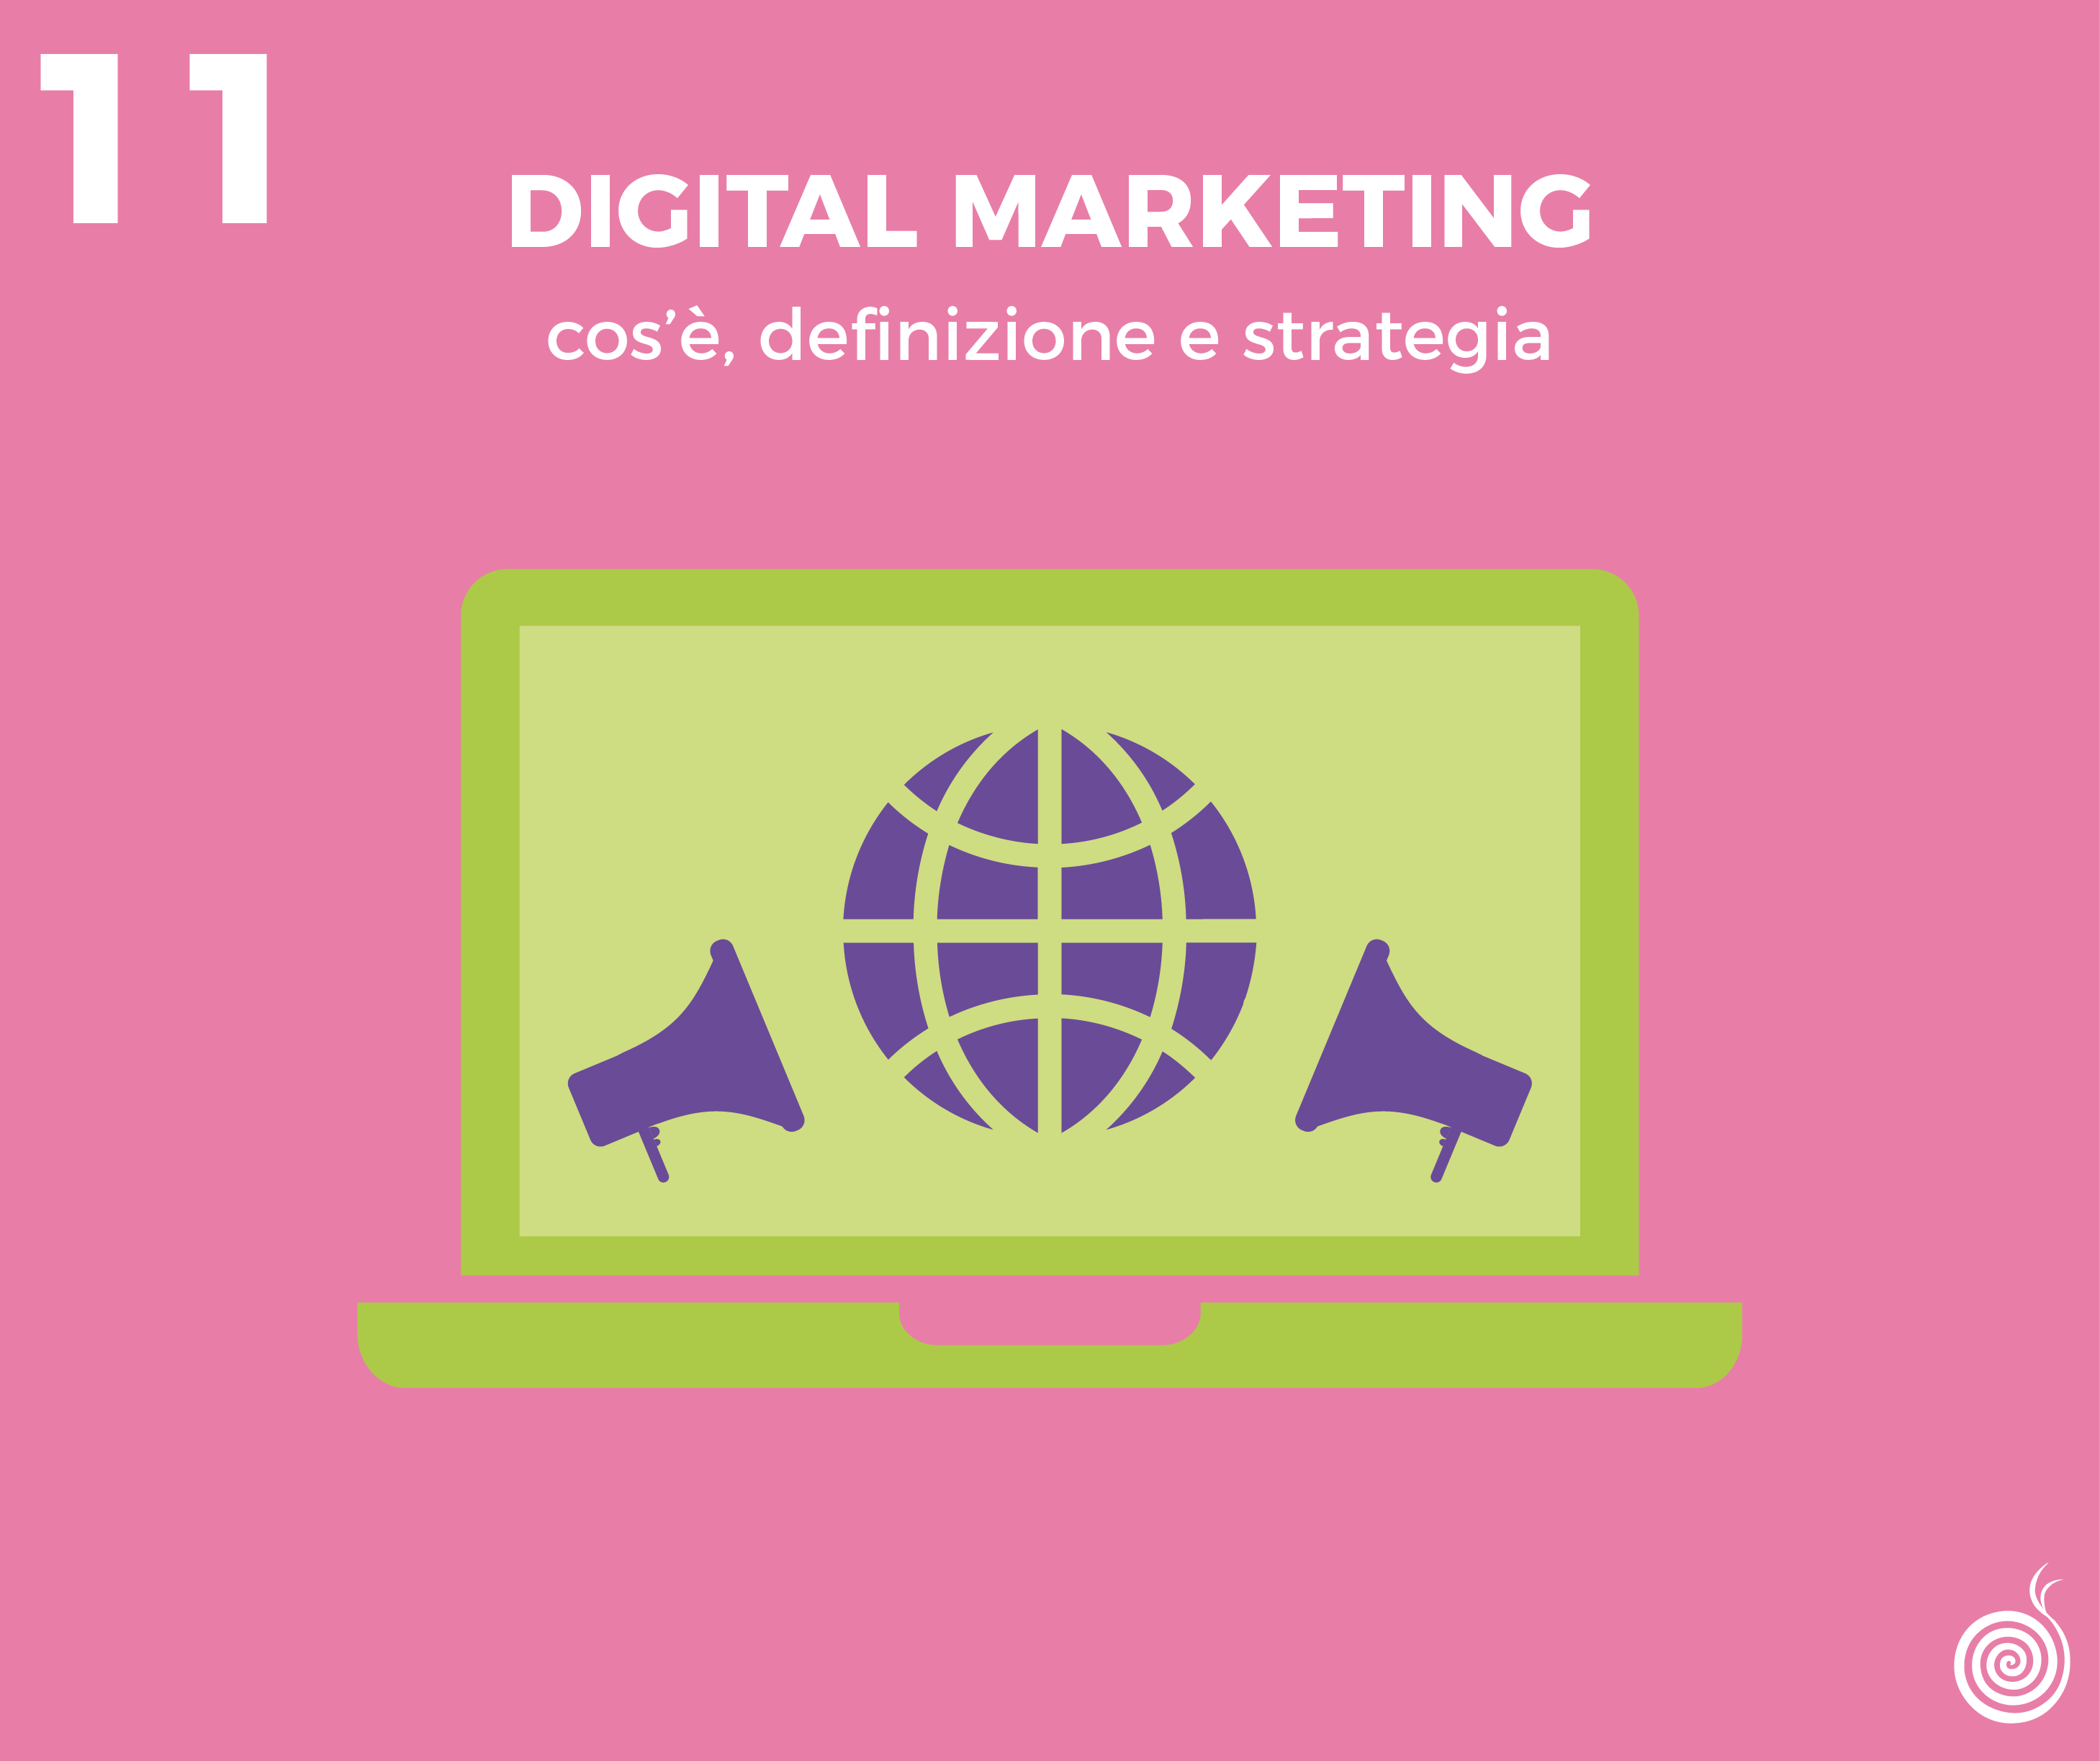 Digital Marketing: cos'è, definizione e strategia